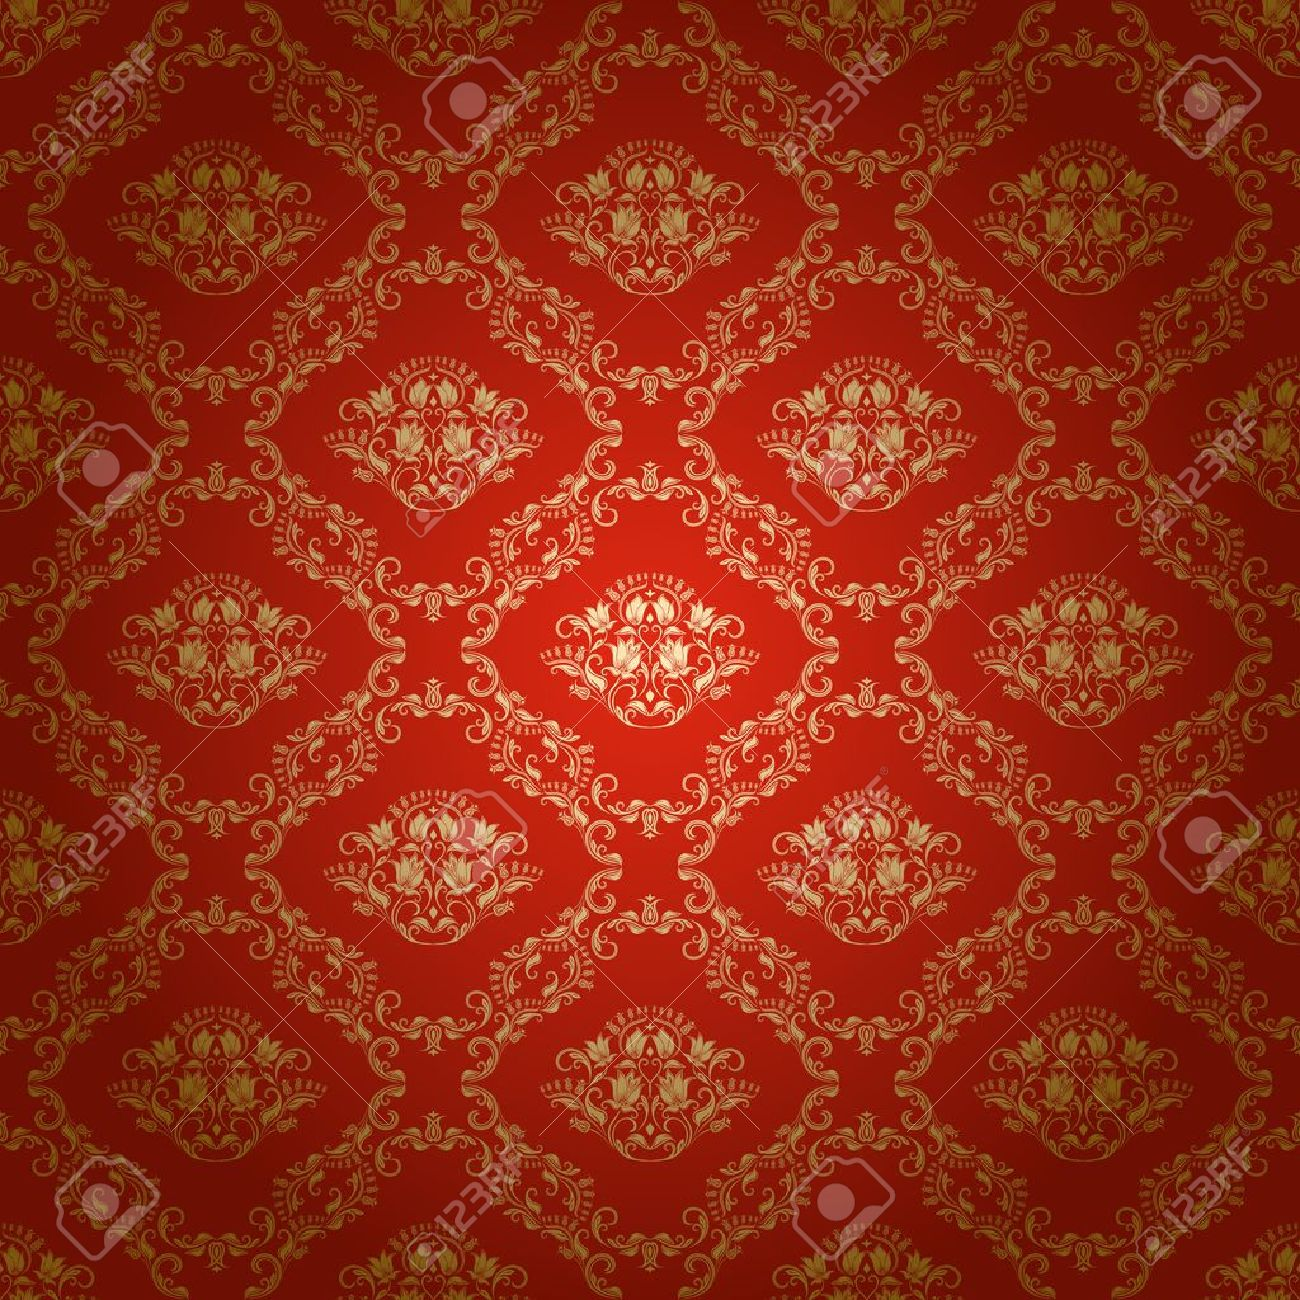 Download Royal Red Wal...K Letter Wallpapers 3d